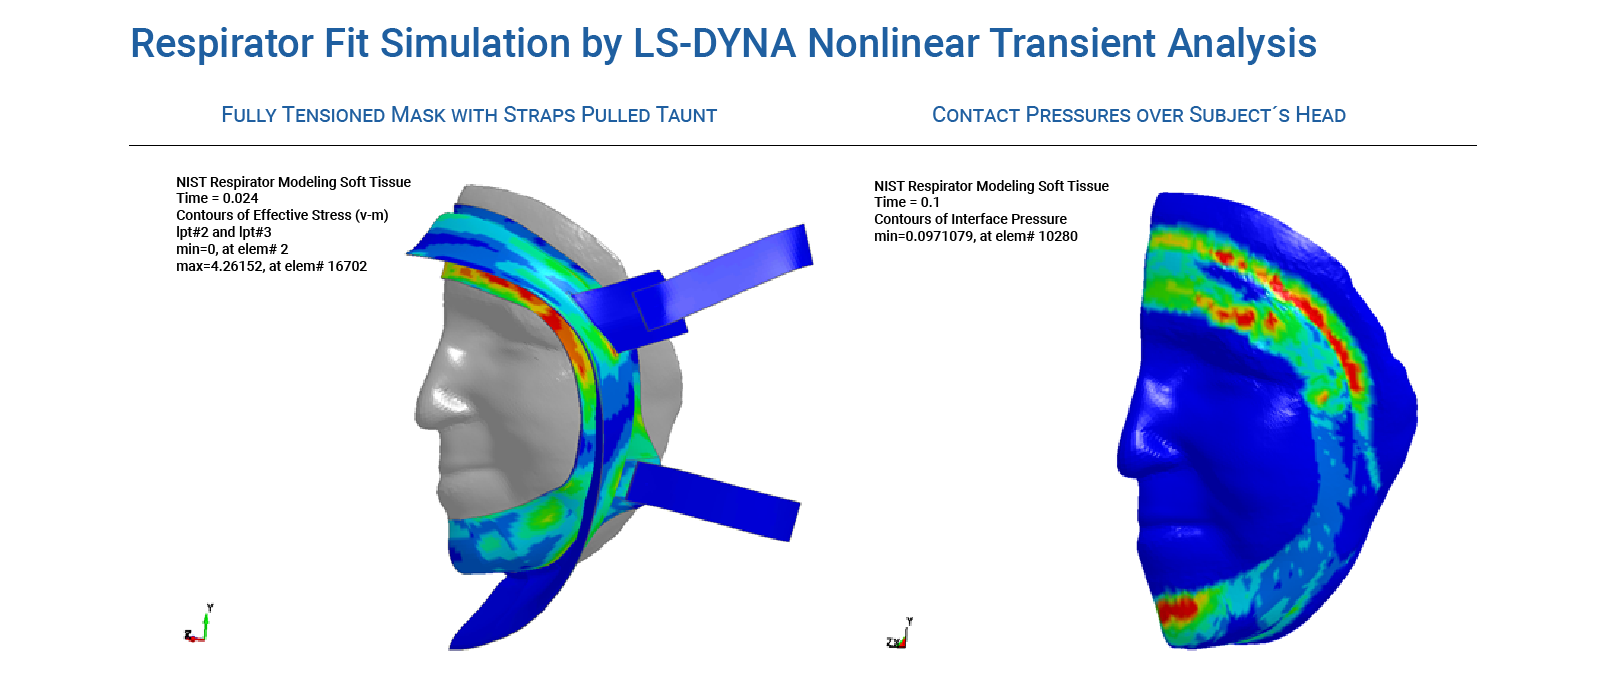 Dynamic nonlinear LS-DYNA simulation of Respirator Mask Fit Process - Predictive Engineering LS-DYNA Consulting Services